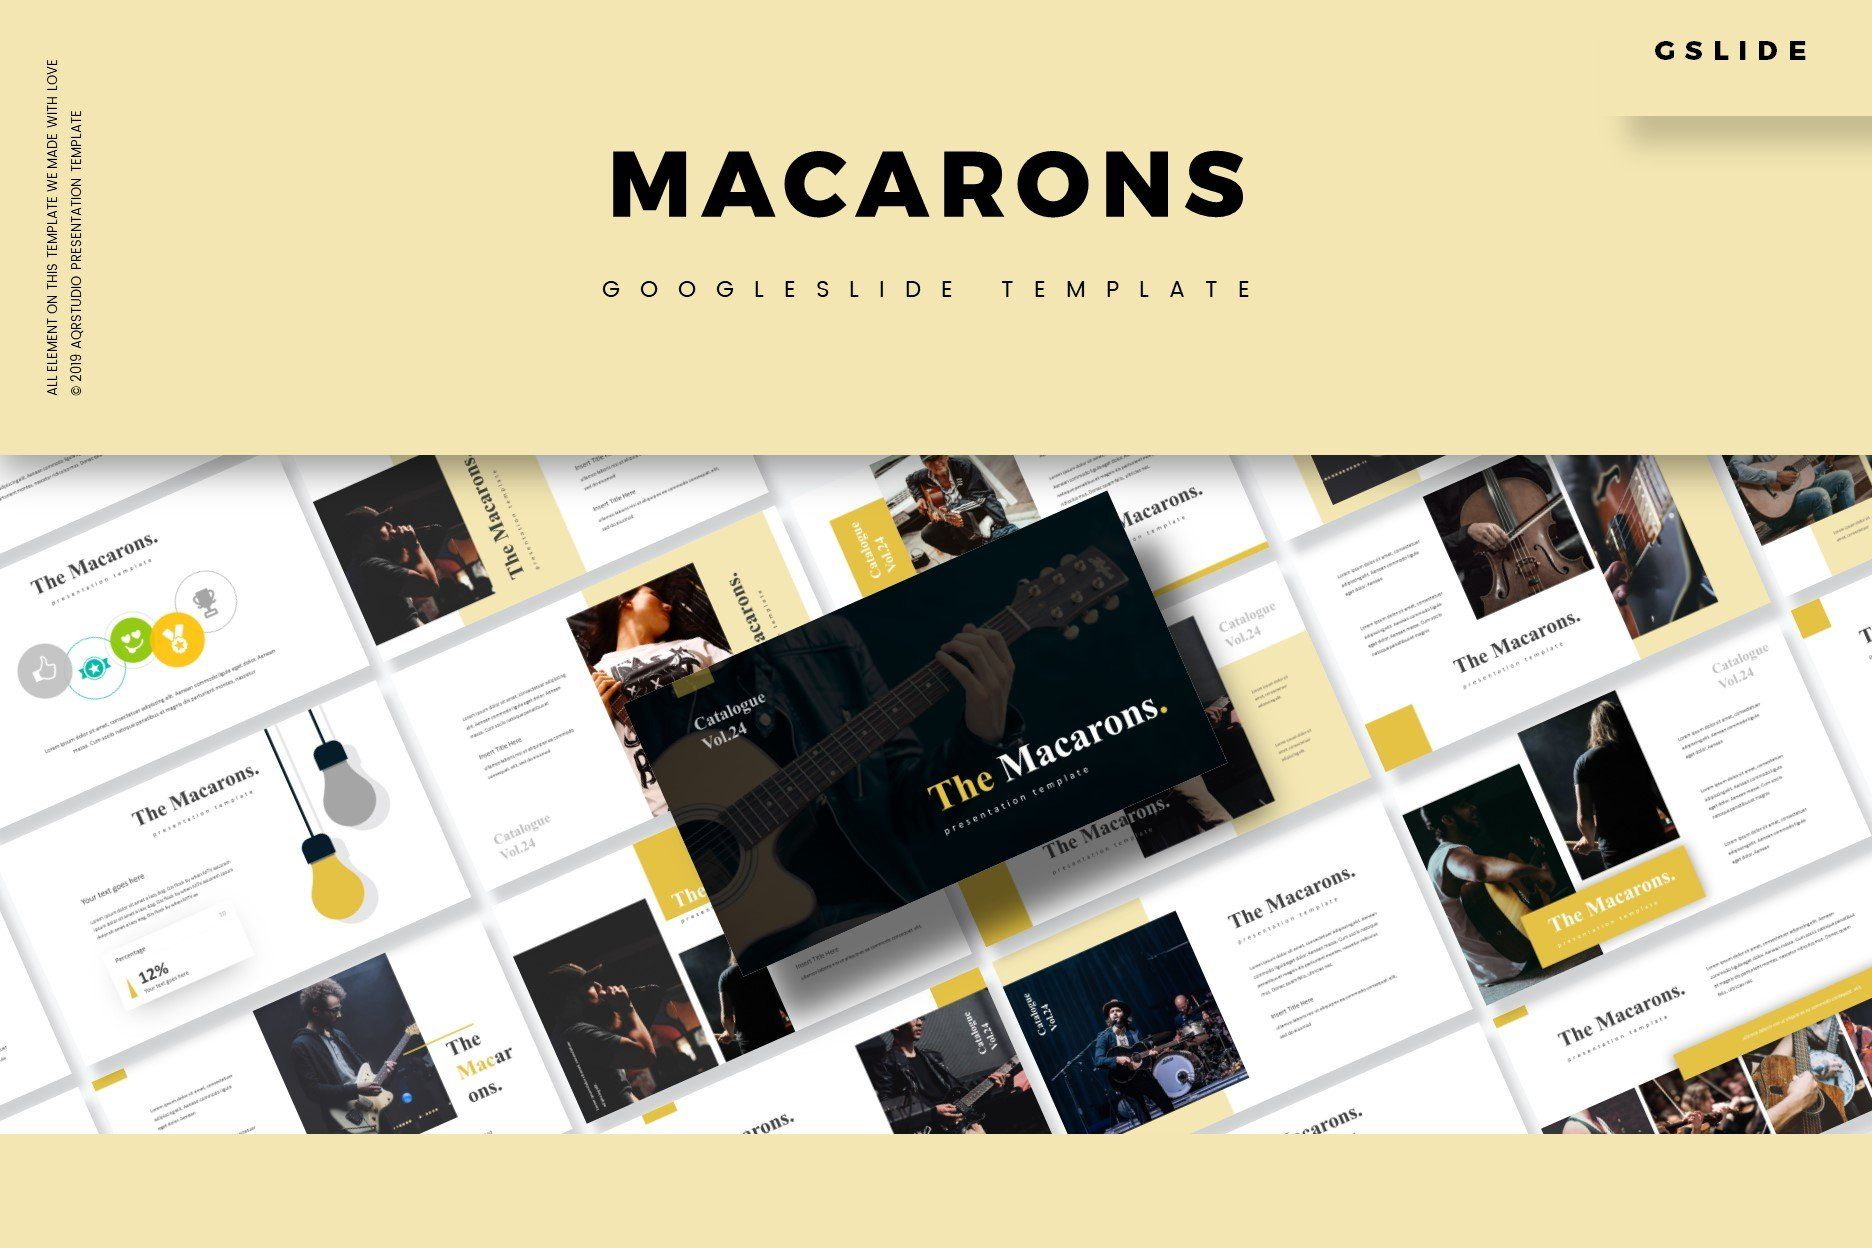 The Macarons Google Slides Template Google Slides Template Google Slides Templates